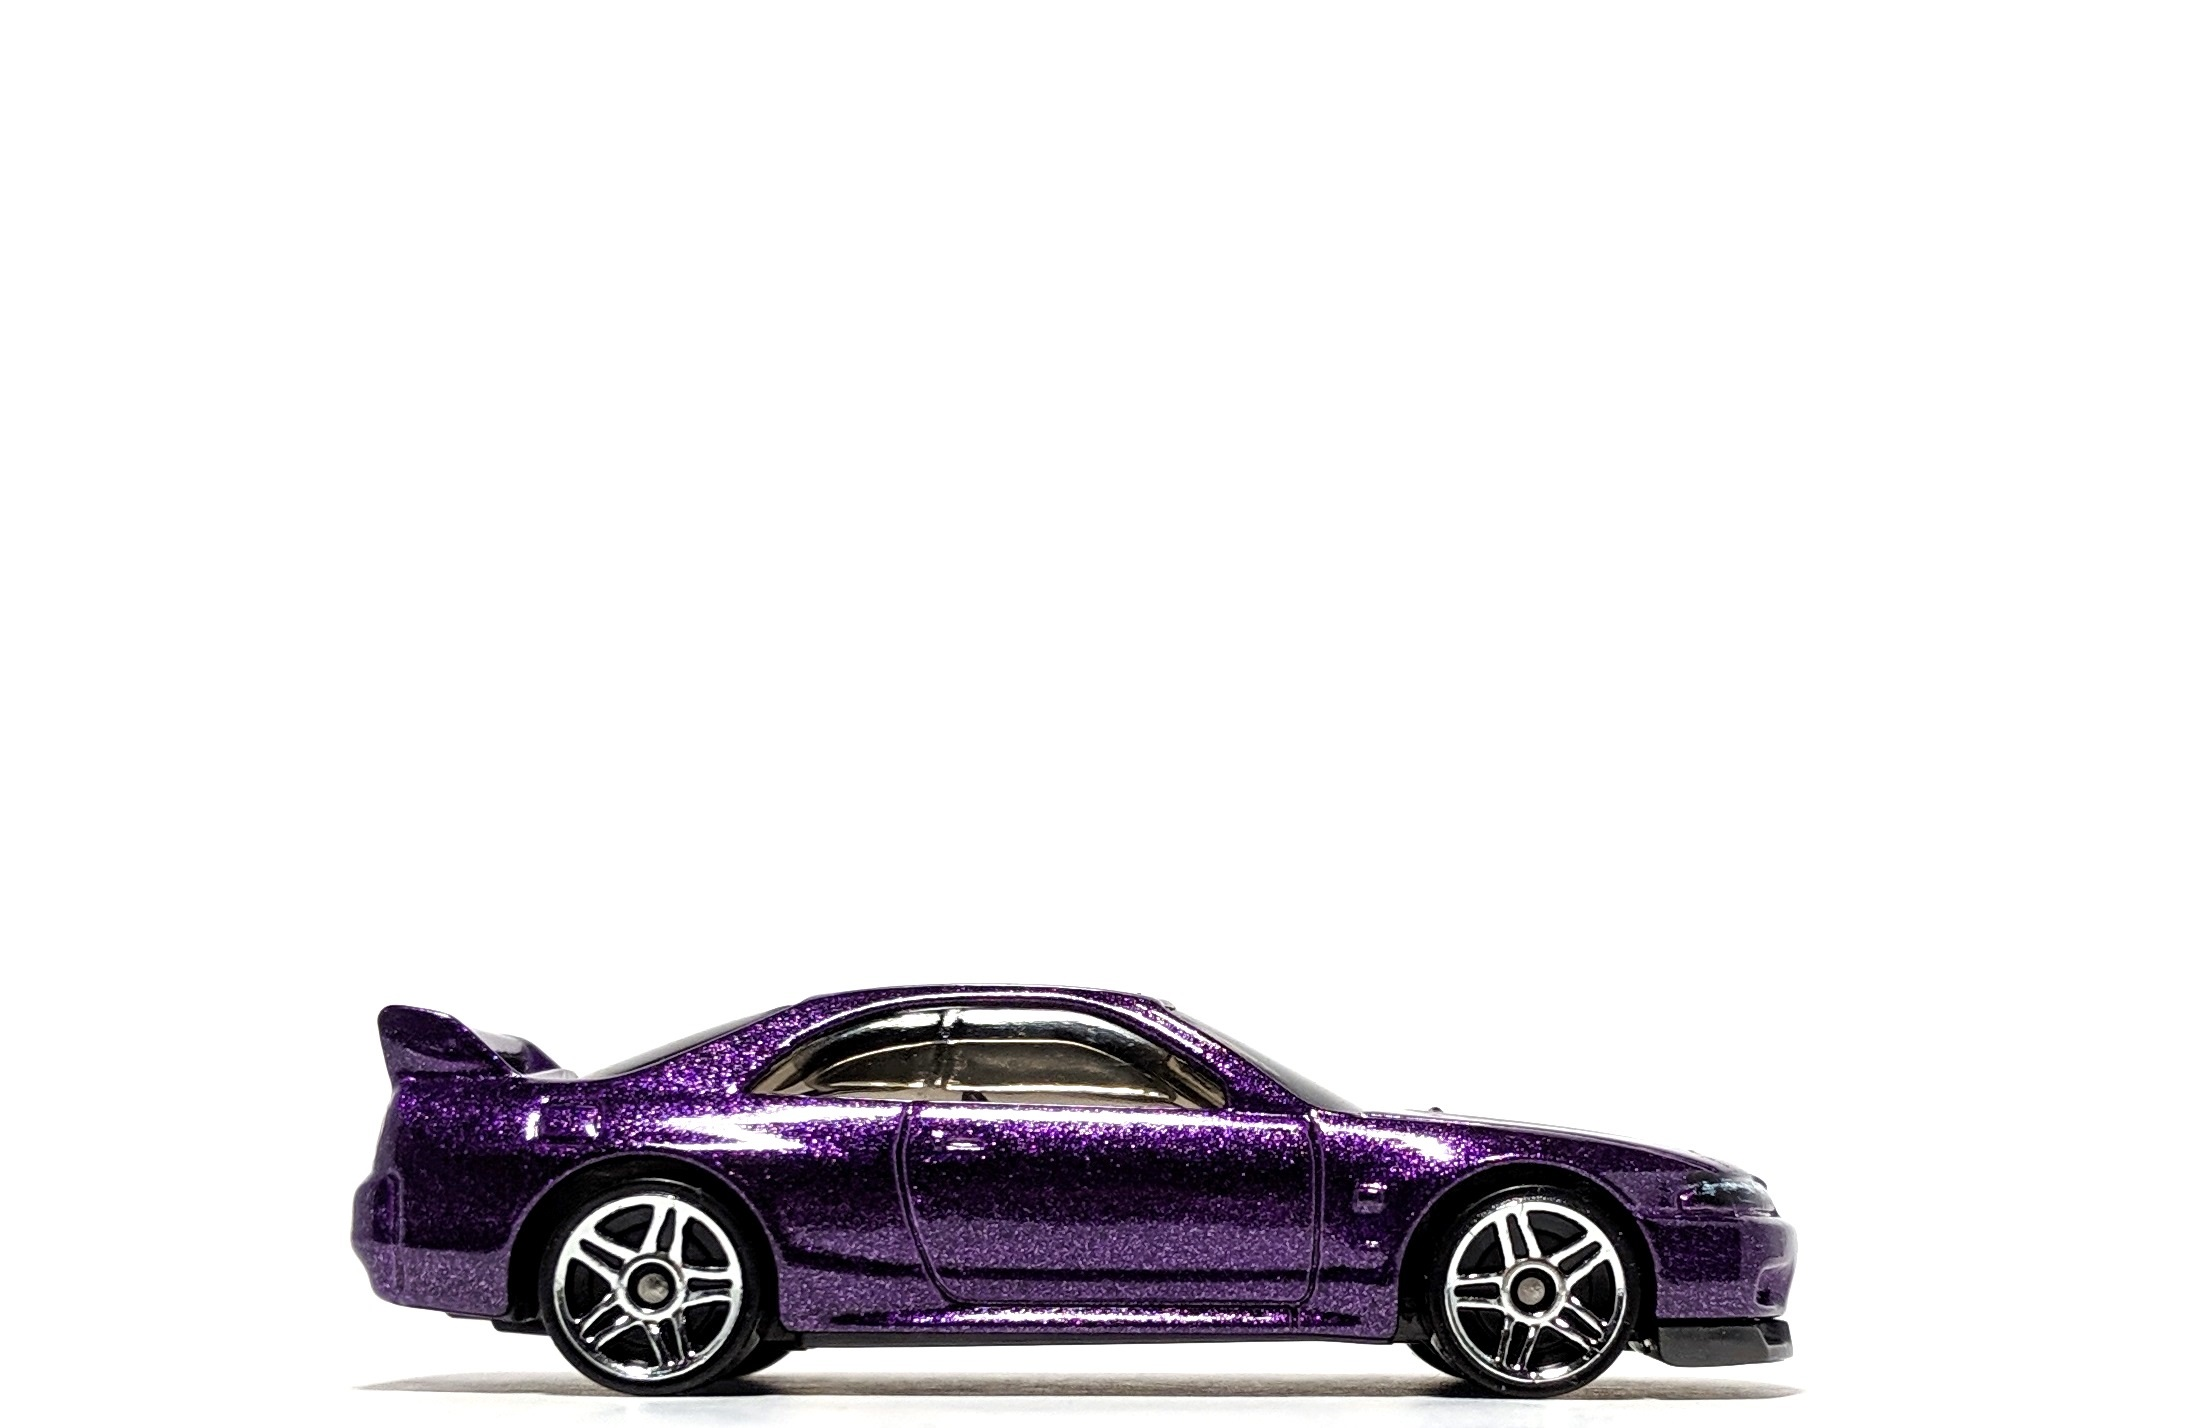 Nissan Skyline GT-R R33, by Hot Wheels